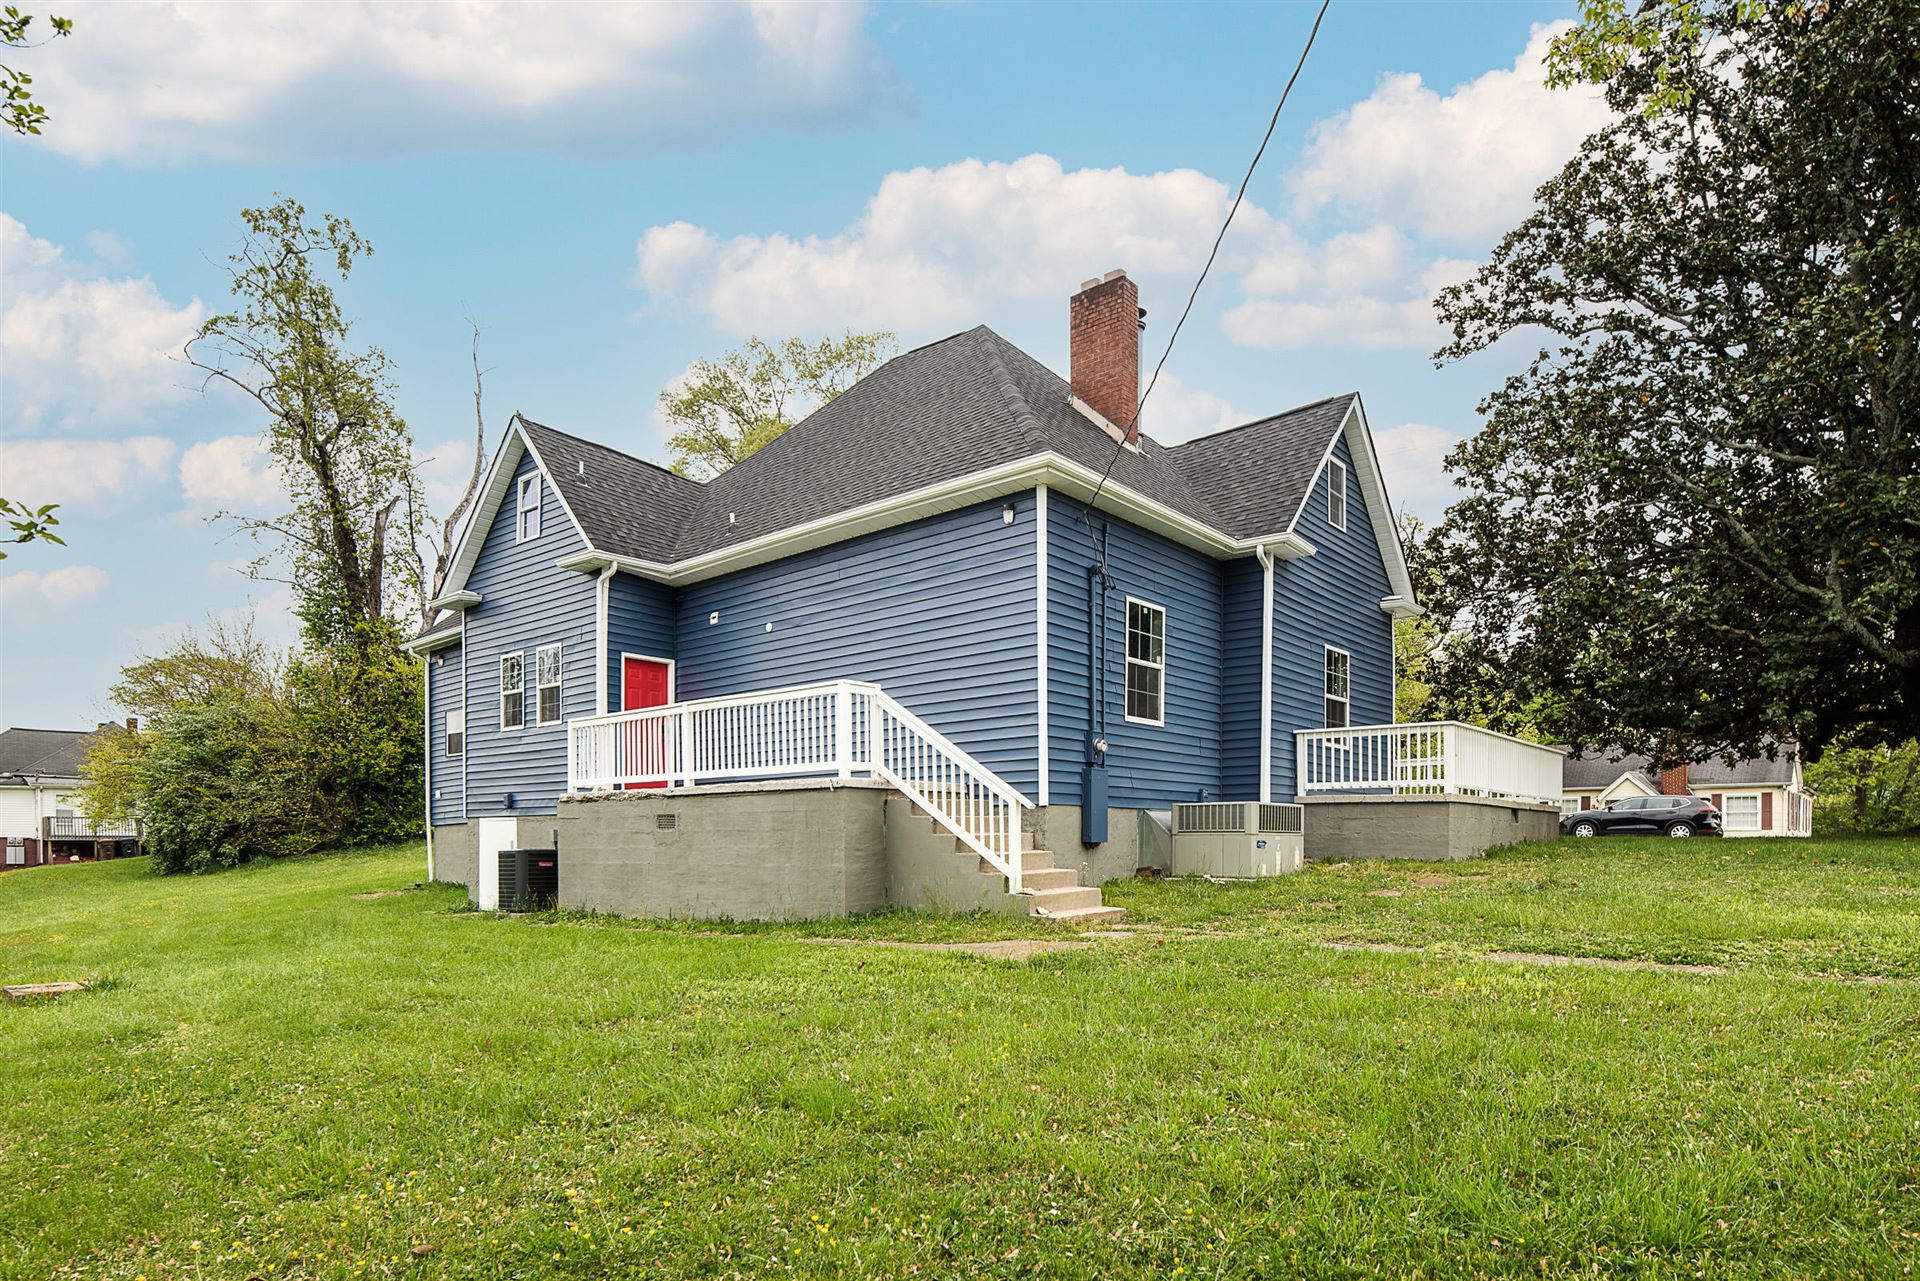 Photo of 3405 Lansing Ave, Knoxville, TN 37914 (MLS # 1149167)